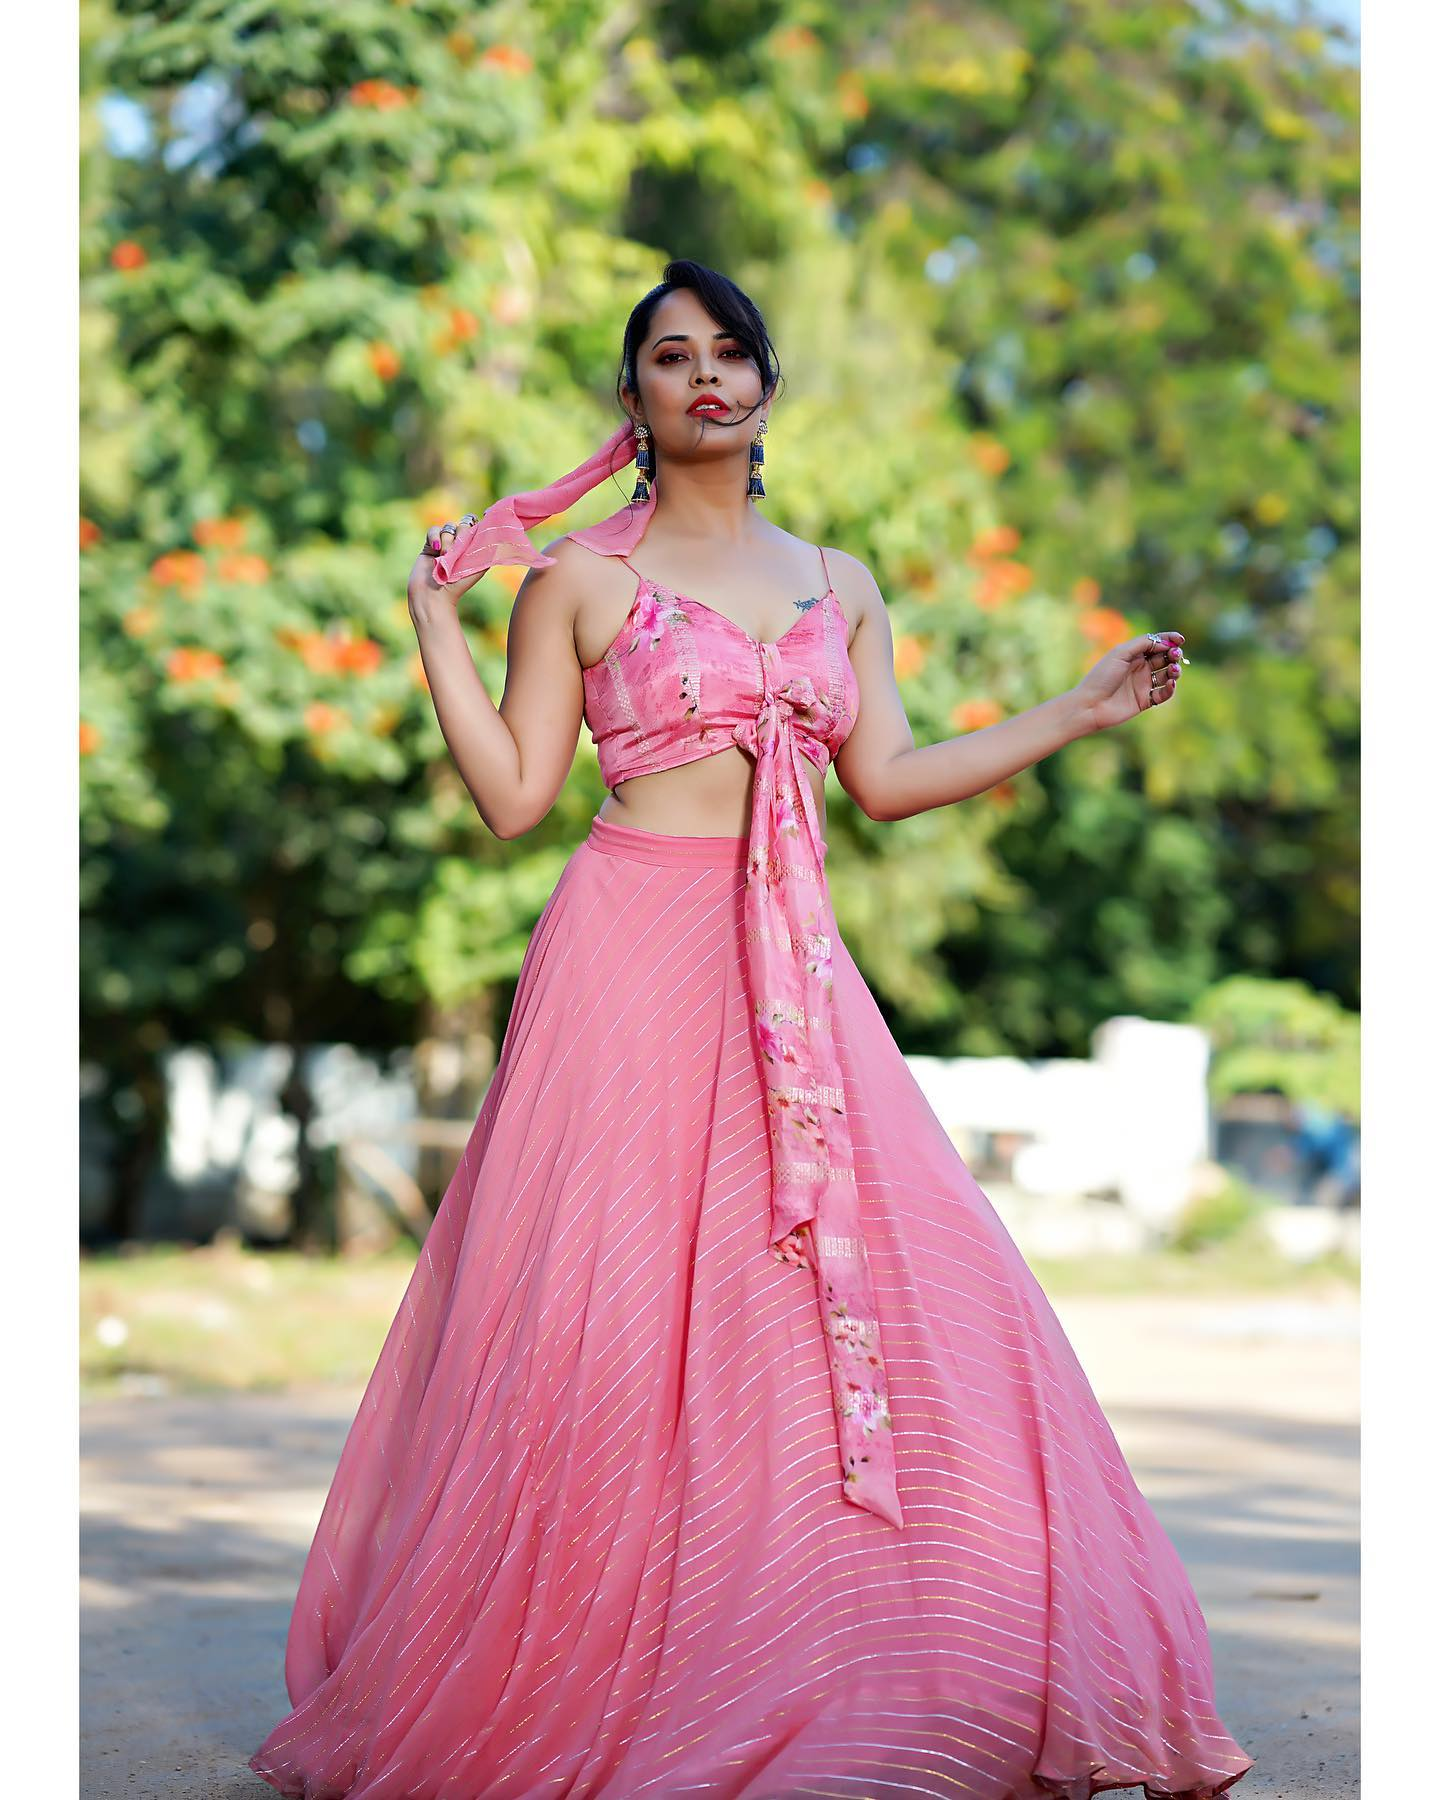 Beautiful actress and anchor Anasuya Bardwaj in pink lehenga and bustier for an event in Etv. 2021-01-01